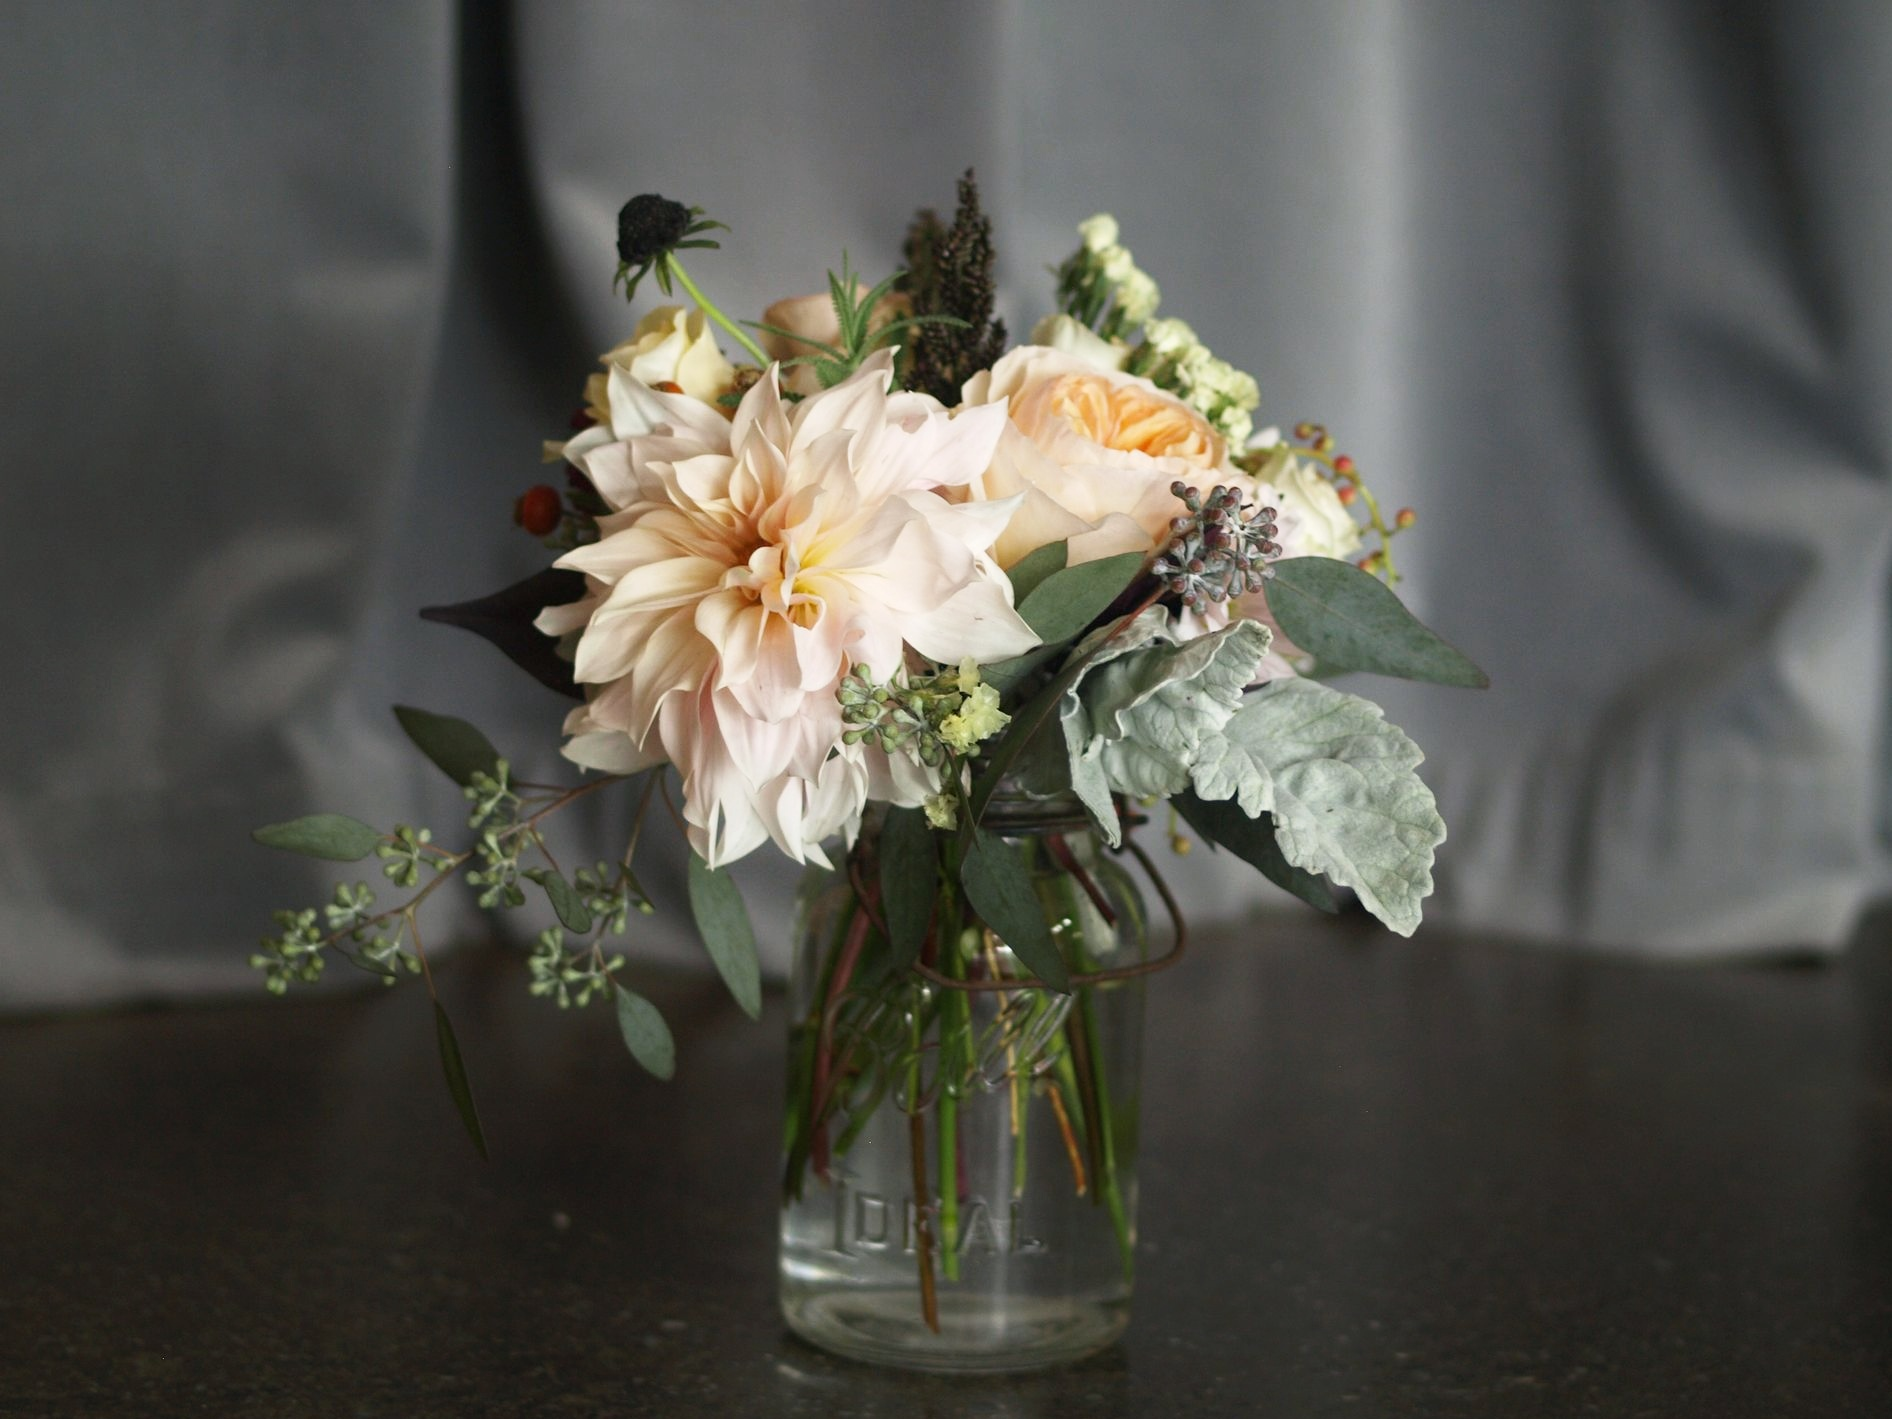 Oreonta house woodstock wedding vintage mason ball jar centerpiece with garden rose dahlia dusty miller scabiosa grey greens and wildflowers rosehip social rosehip floral.jpg